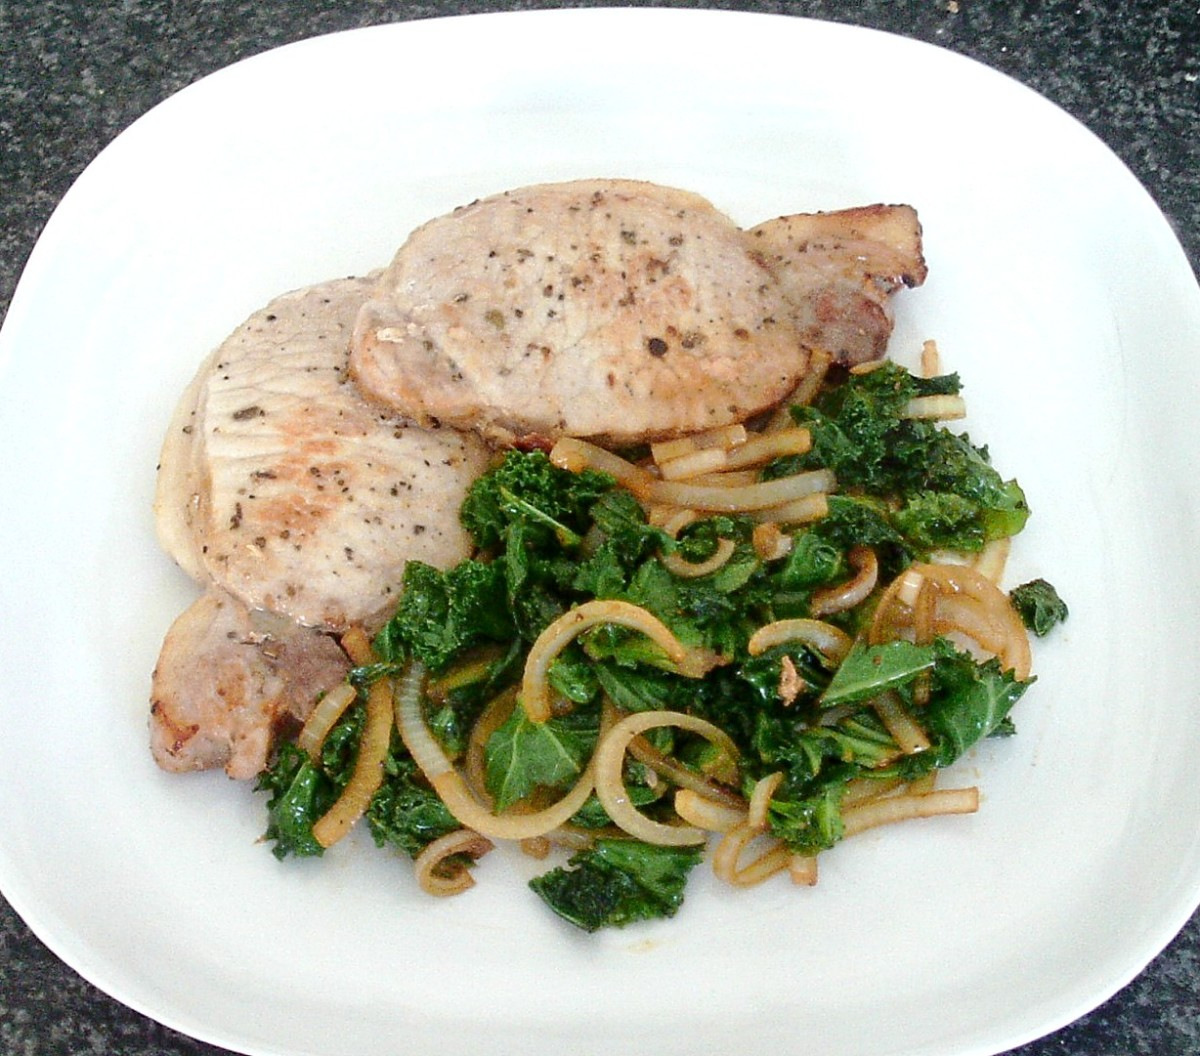 Pan fried tender pork loin fillets are served with kale and onion sauteed in their juices